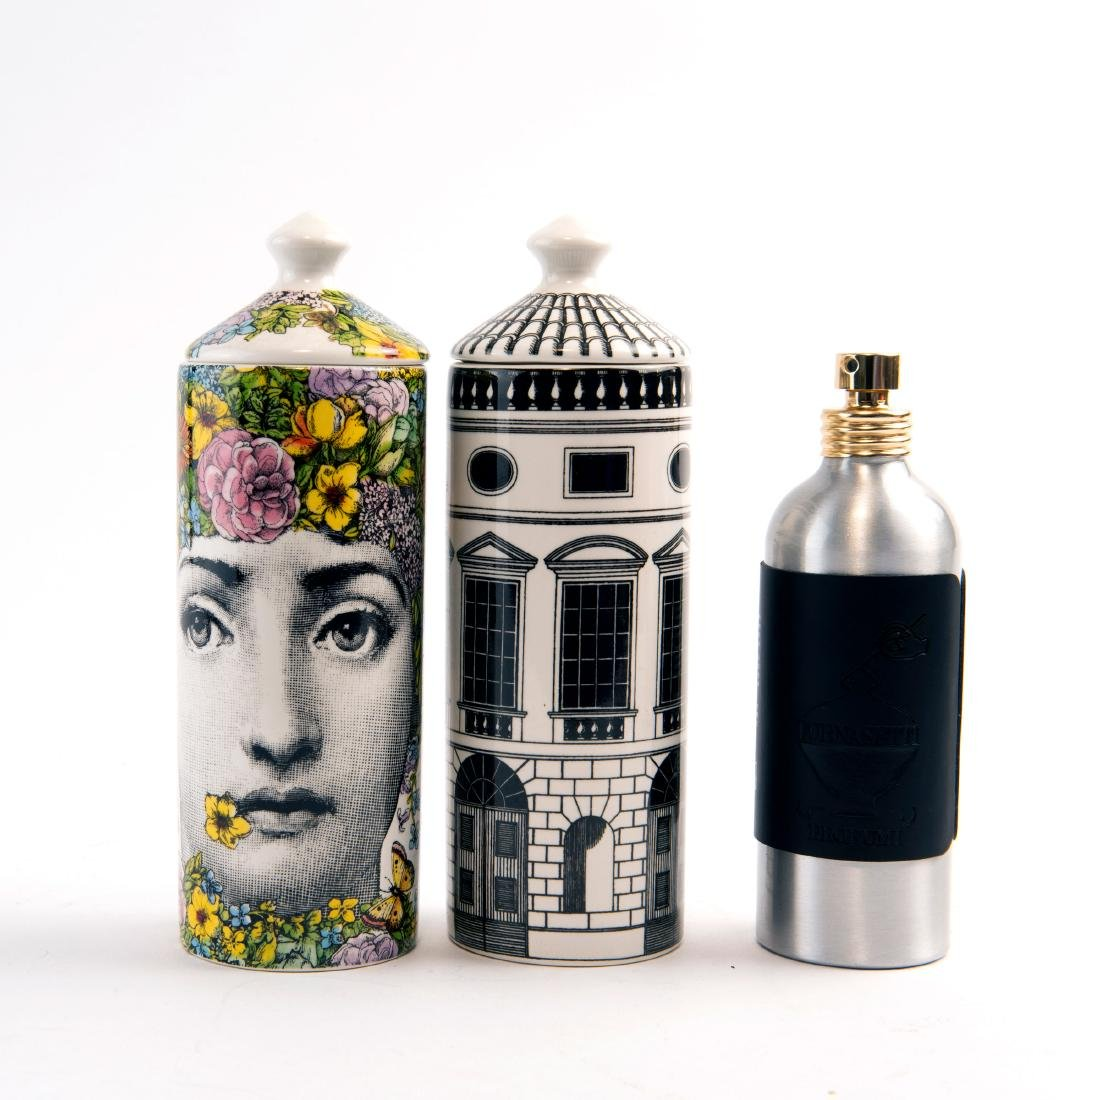 Two room scents, 'Architettura' and 'Flora', 2010s - 2